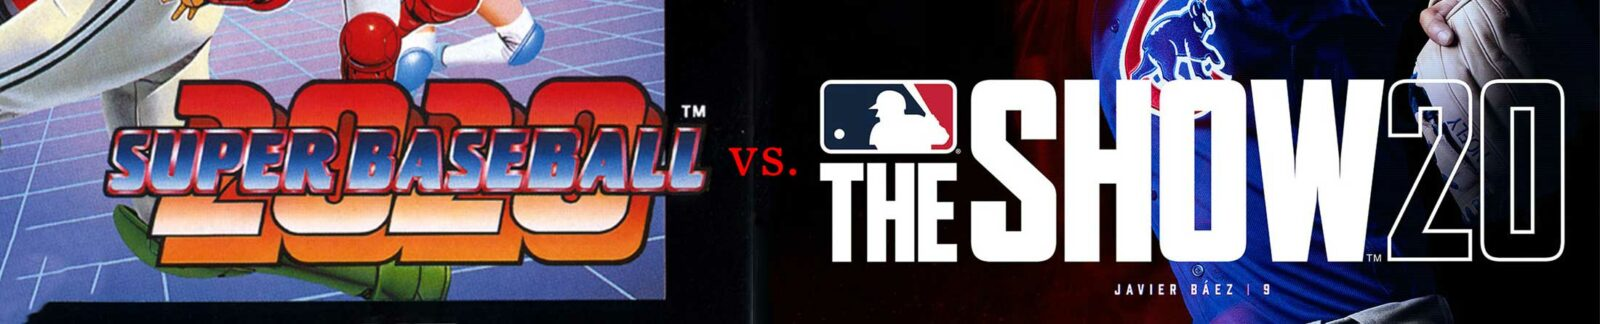 Super Baseball 2020 vs. MLB The Show '20 header